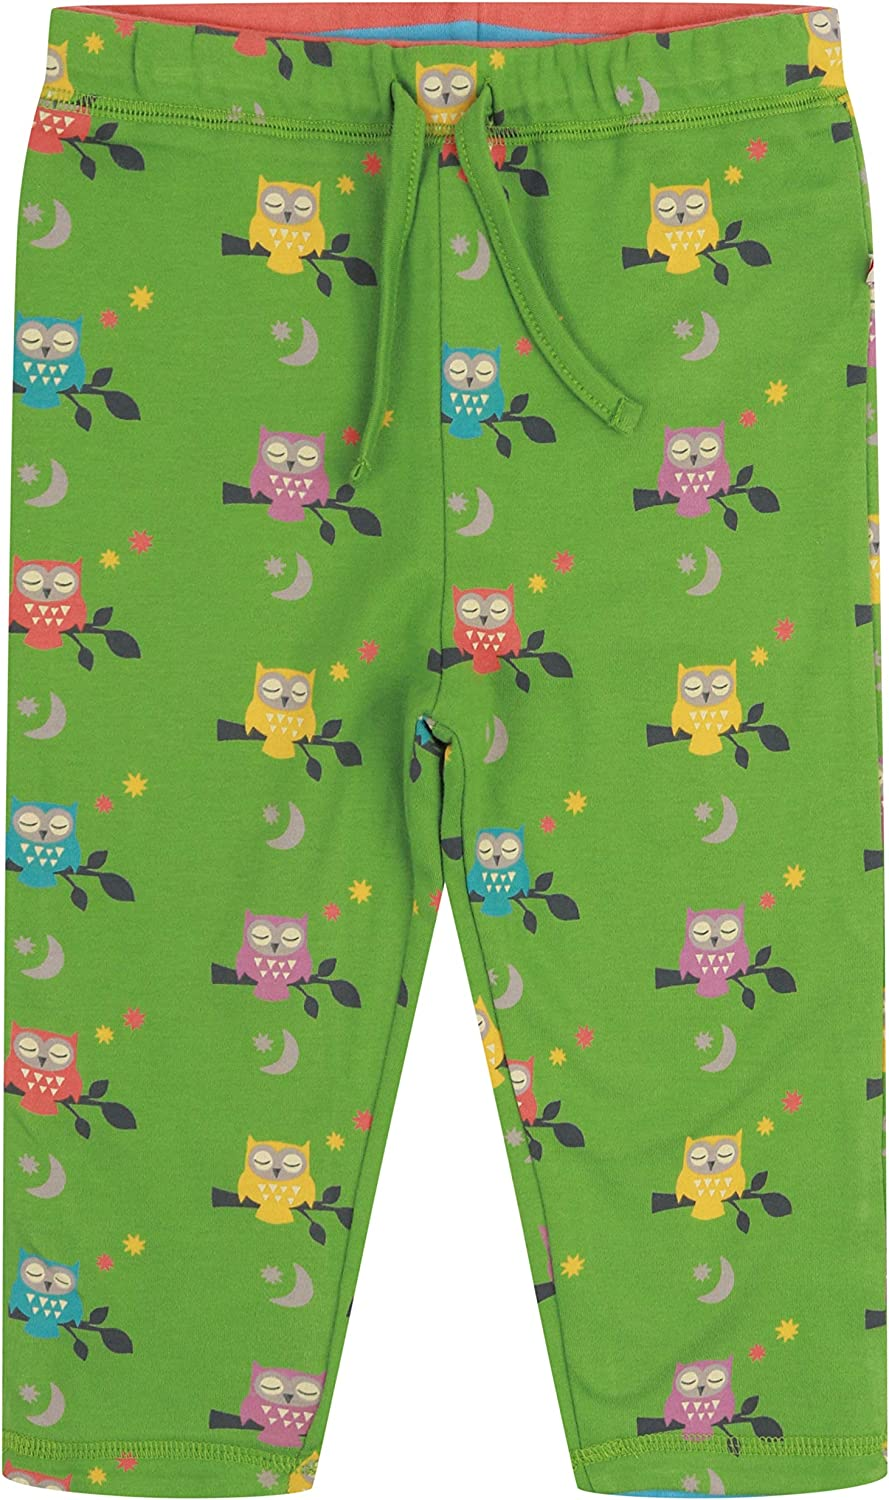 Piccalilly Unisex Reversible Kids Trousers Soft Jersey Organic Cotton Green Owl Design